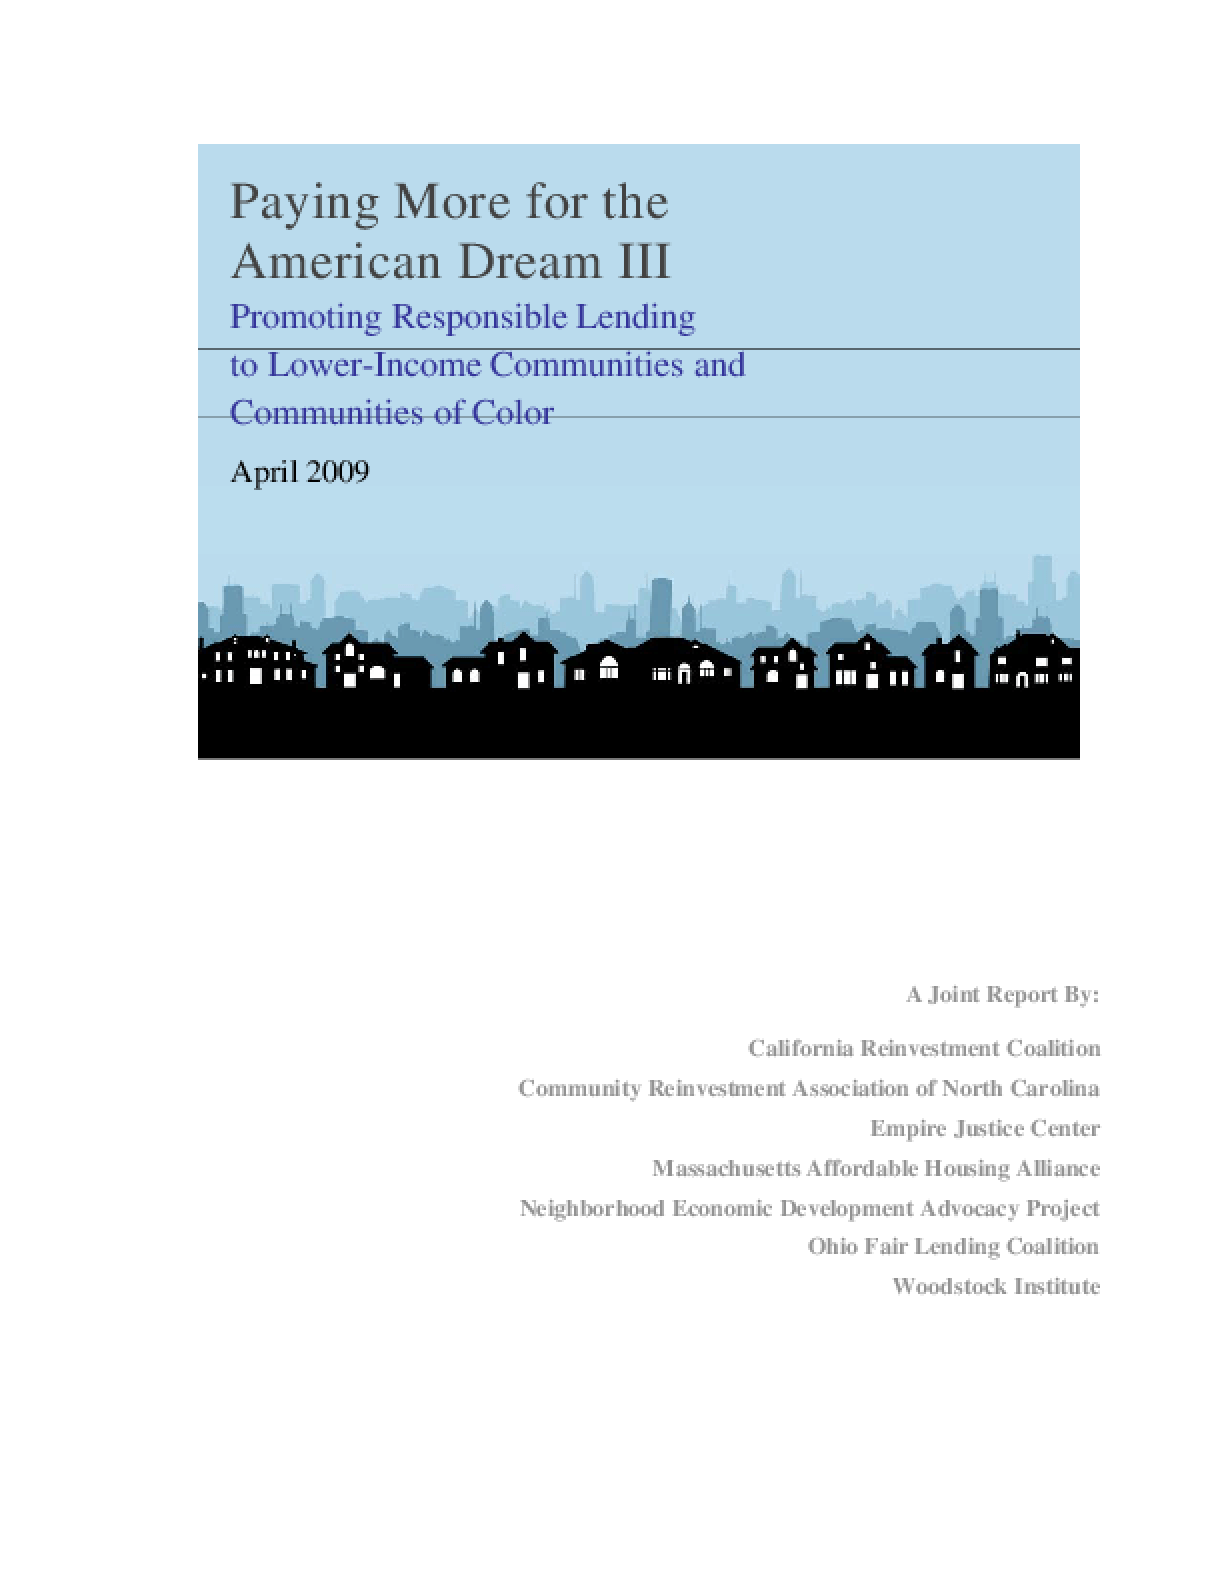 Paying More for the American Dream III: Promoting Responsible Lending to Lower-Income Communities and Communities of Color